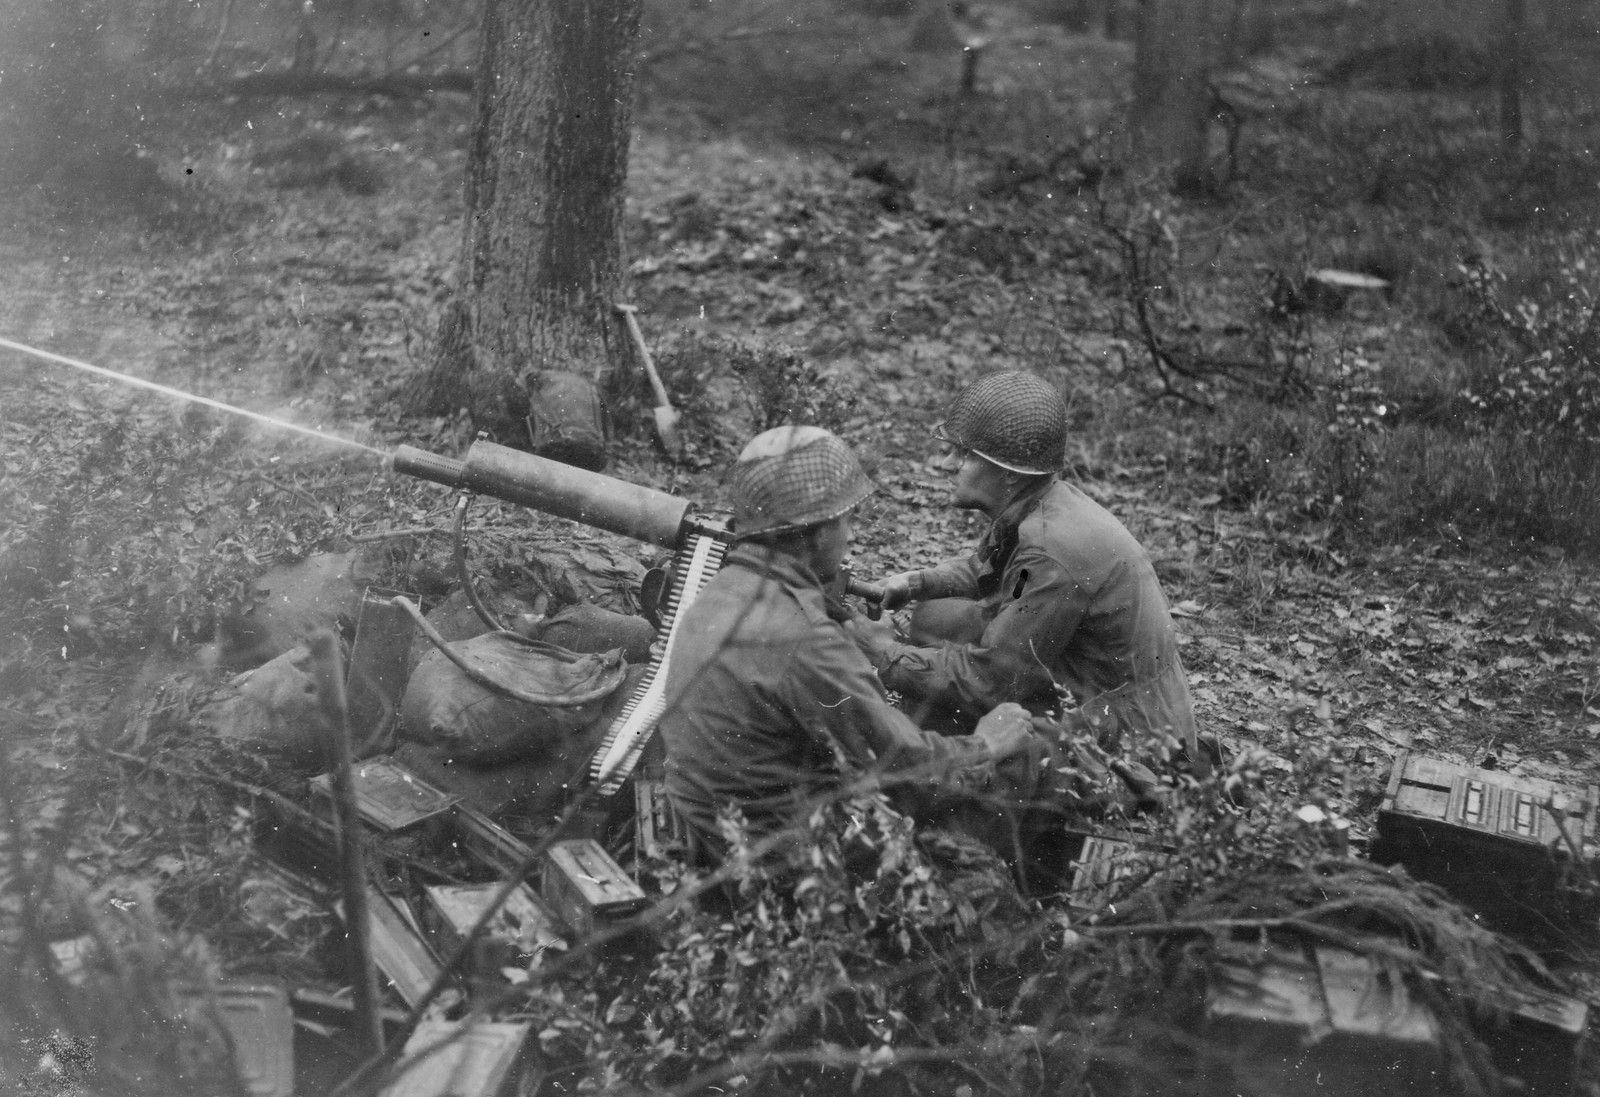 Hurtgen Forest | 9th Infantry Division in WWII